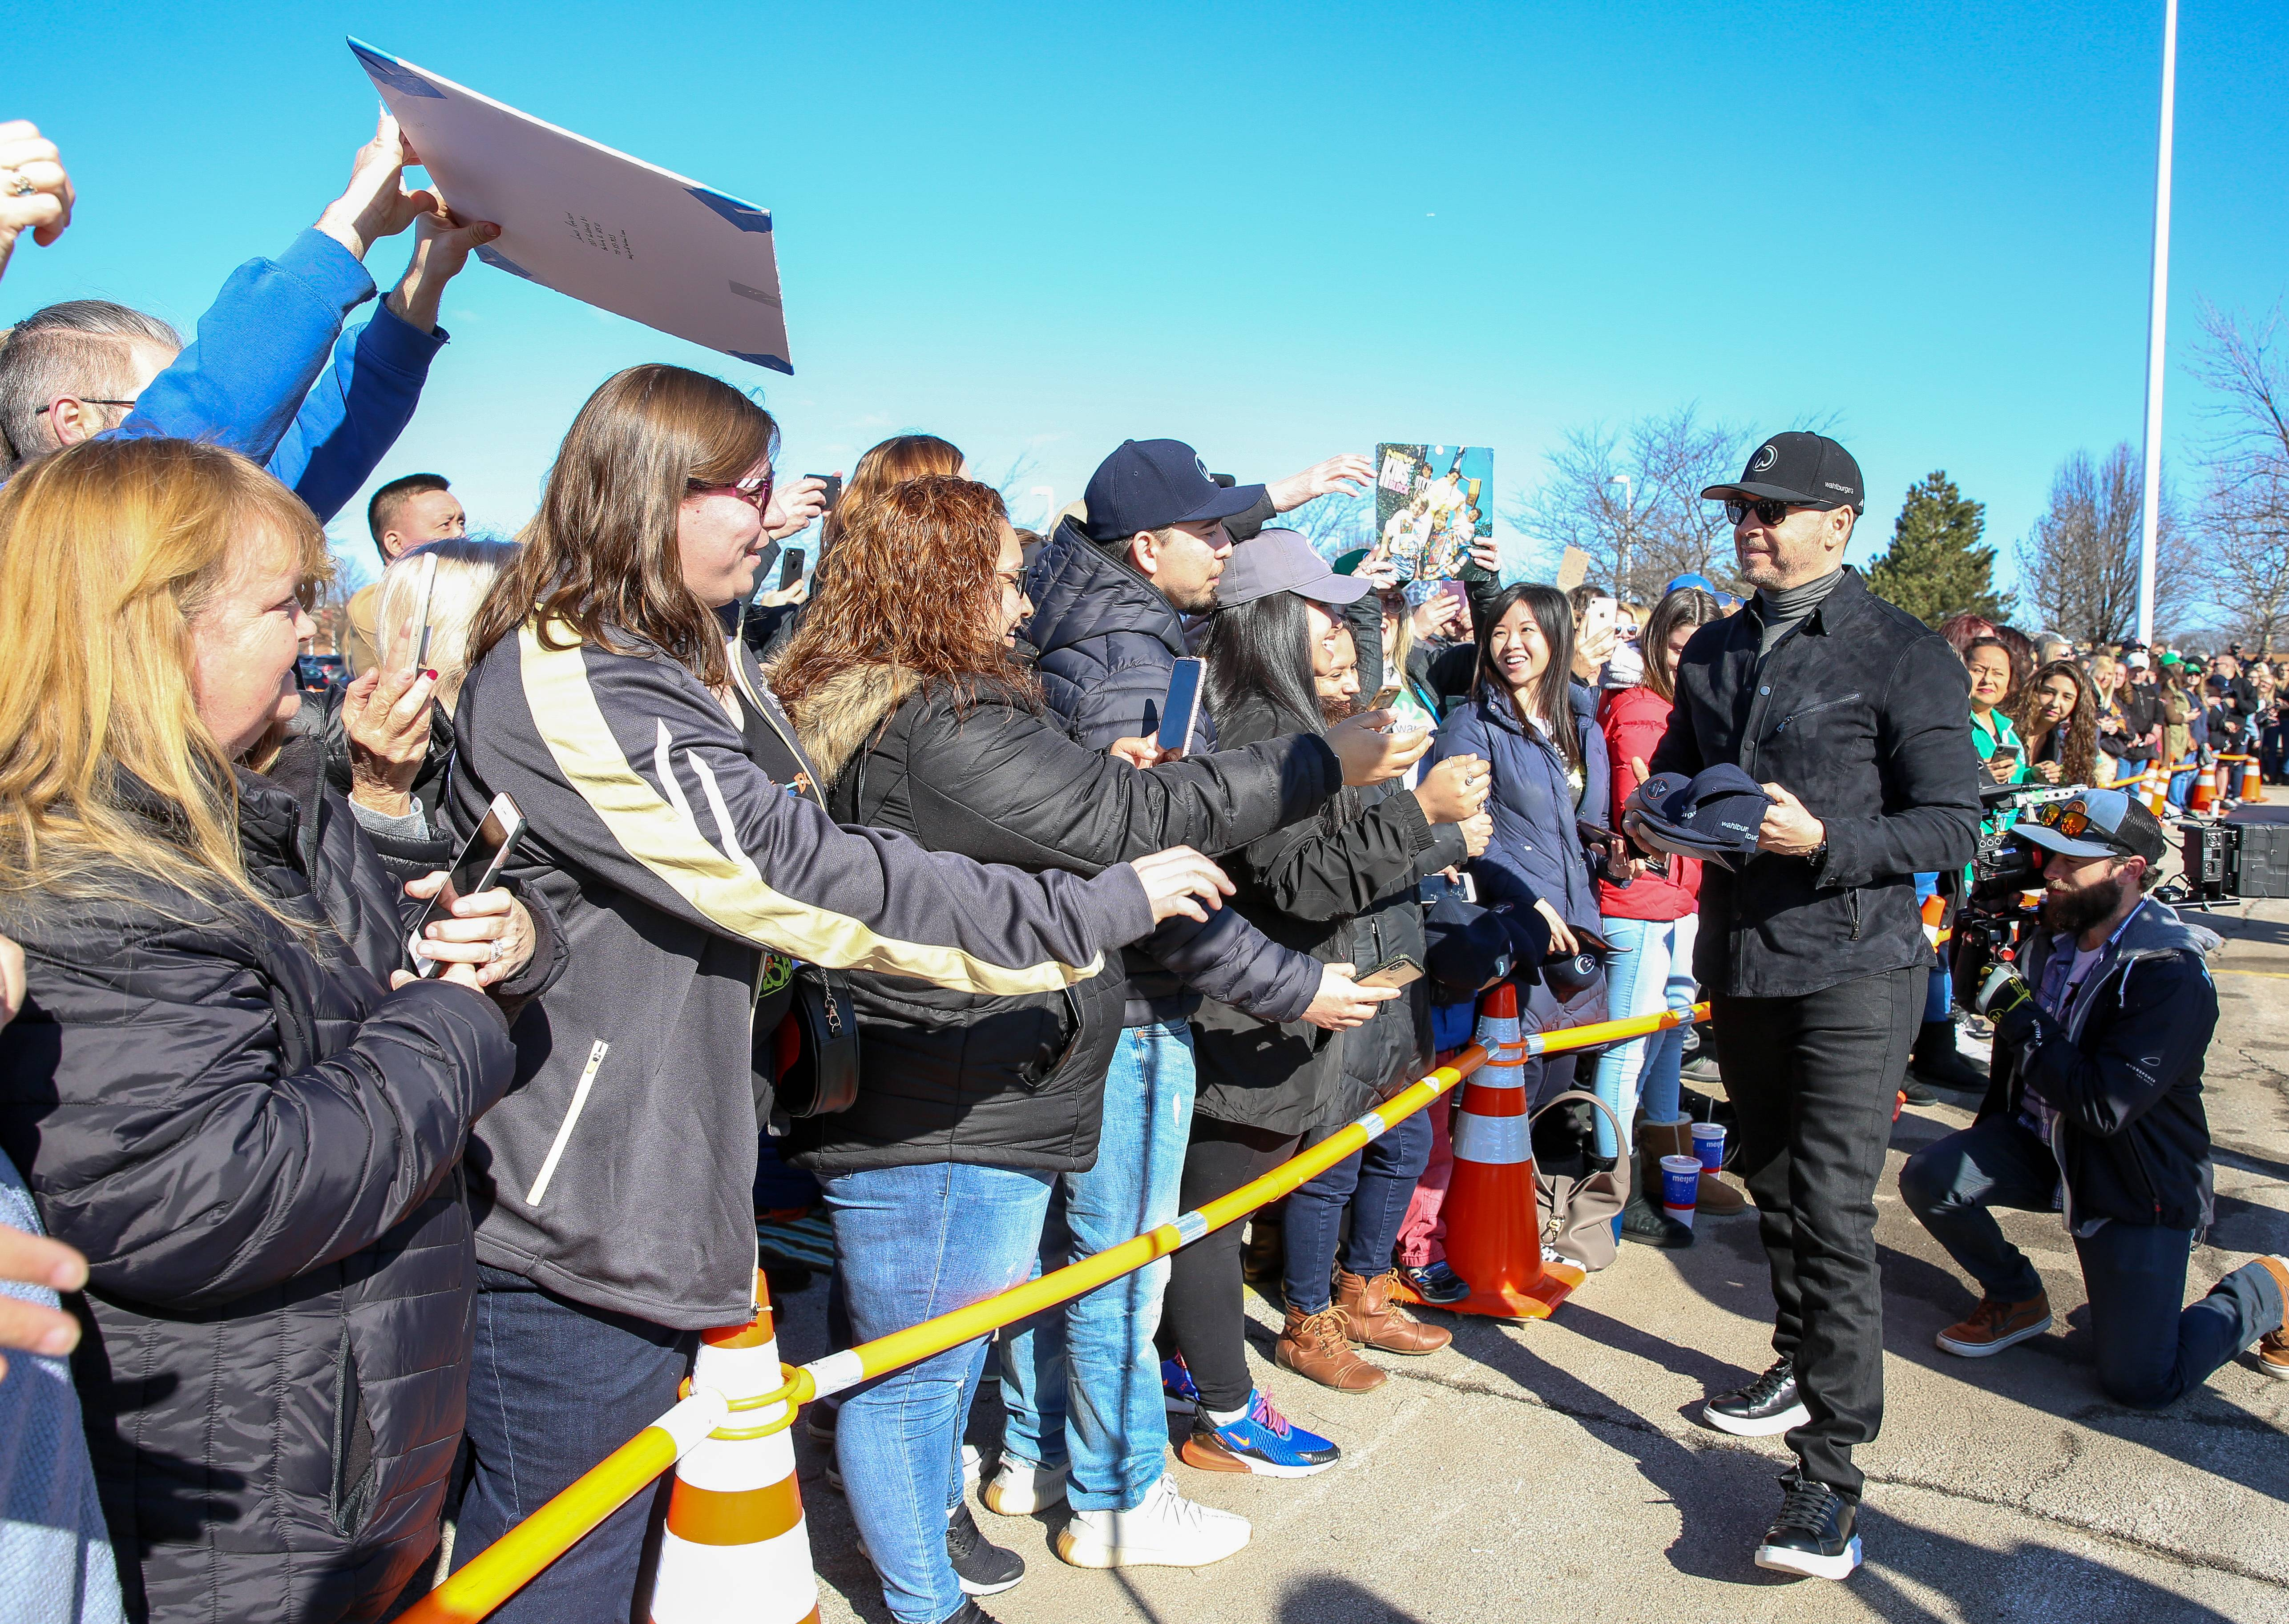 Donnie Wahlberg greets fans during Friday's groundbreaking of the new Wahlburgers restaurant in St. Charles.